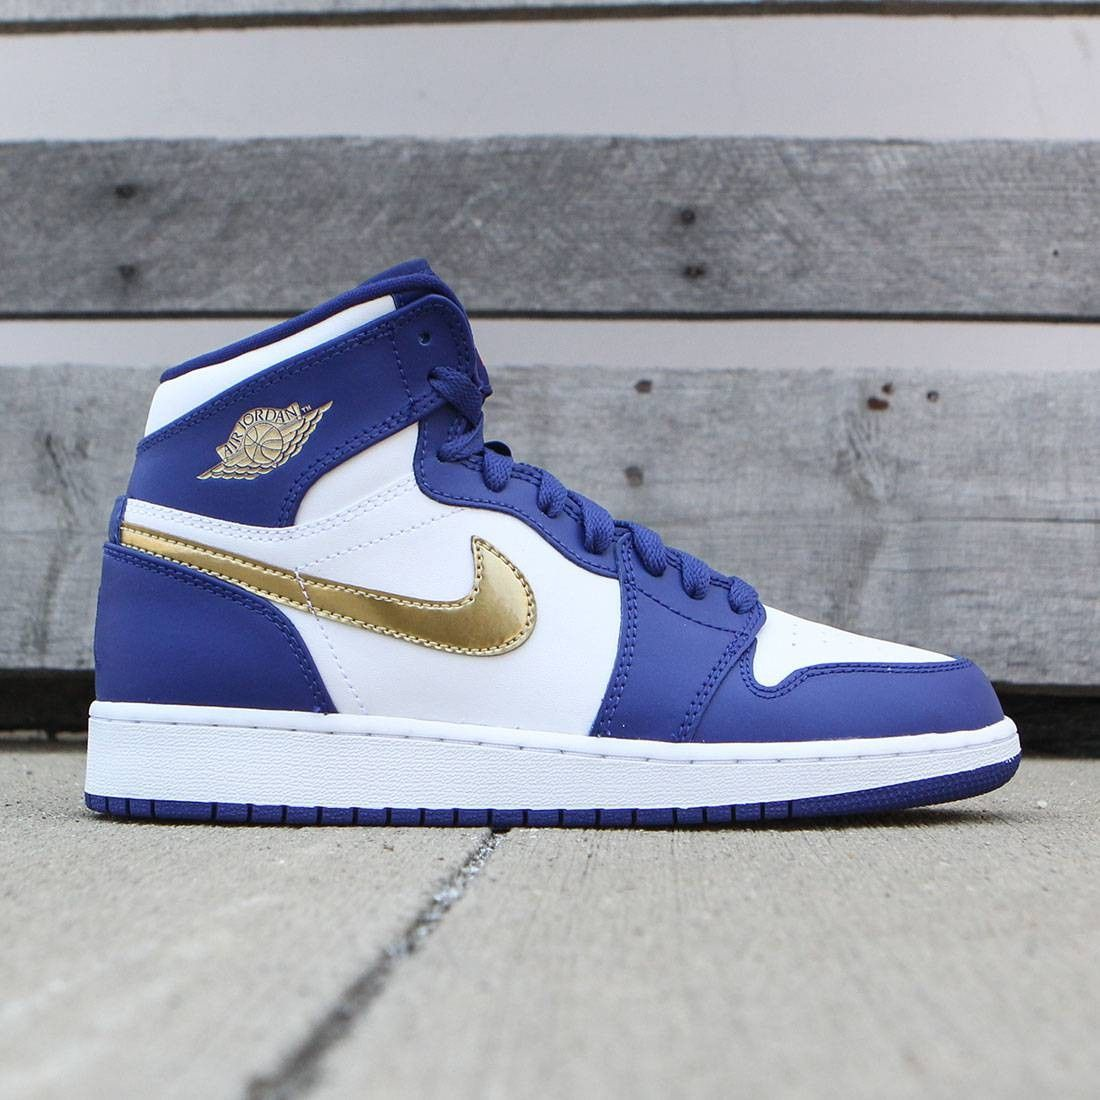 daddb330c15b Jordan Big Kids Air Jordan 1 Retro High (GS) (deep royal blue   mtlc gold  coin-white)